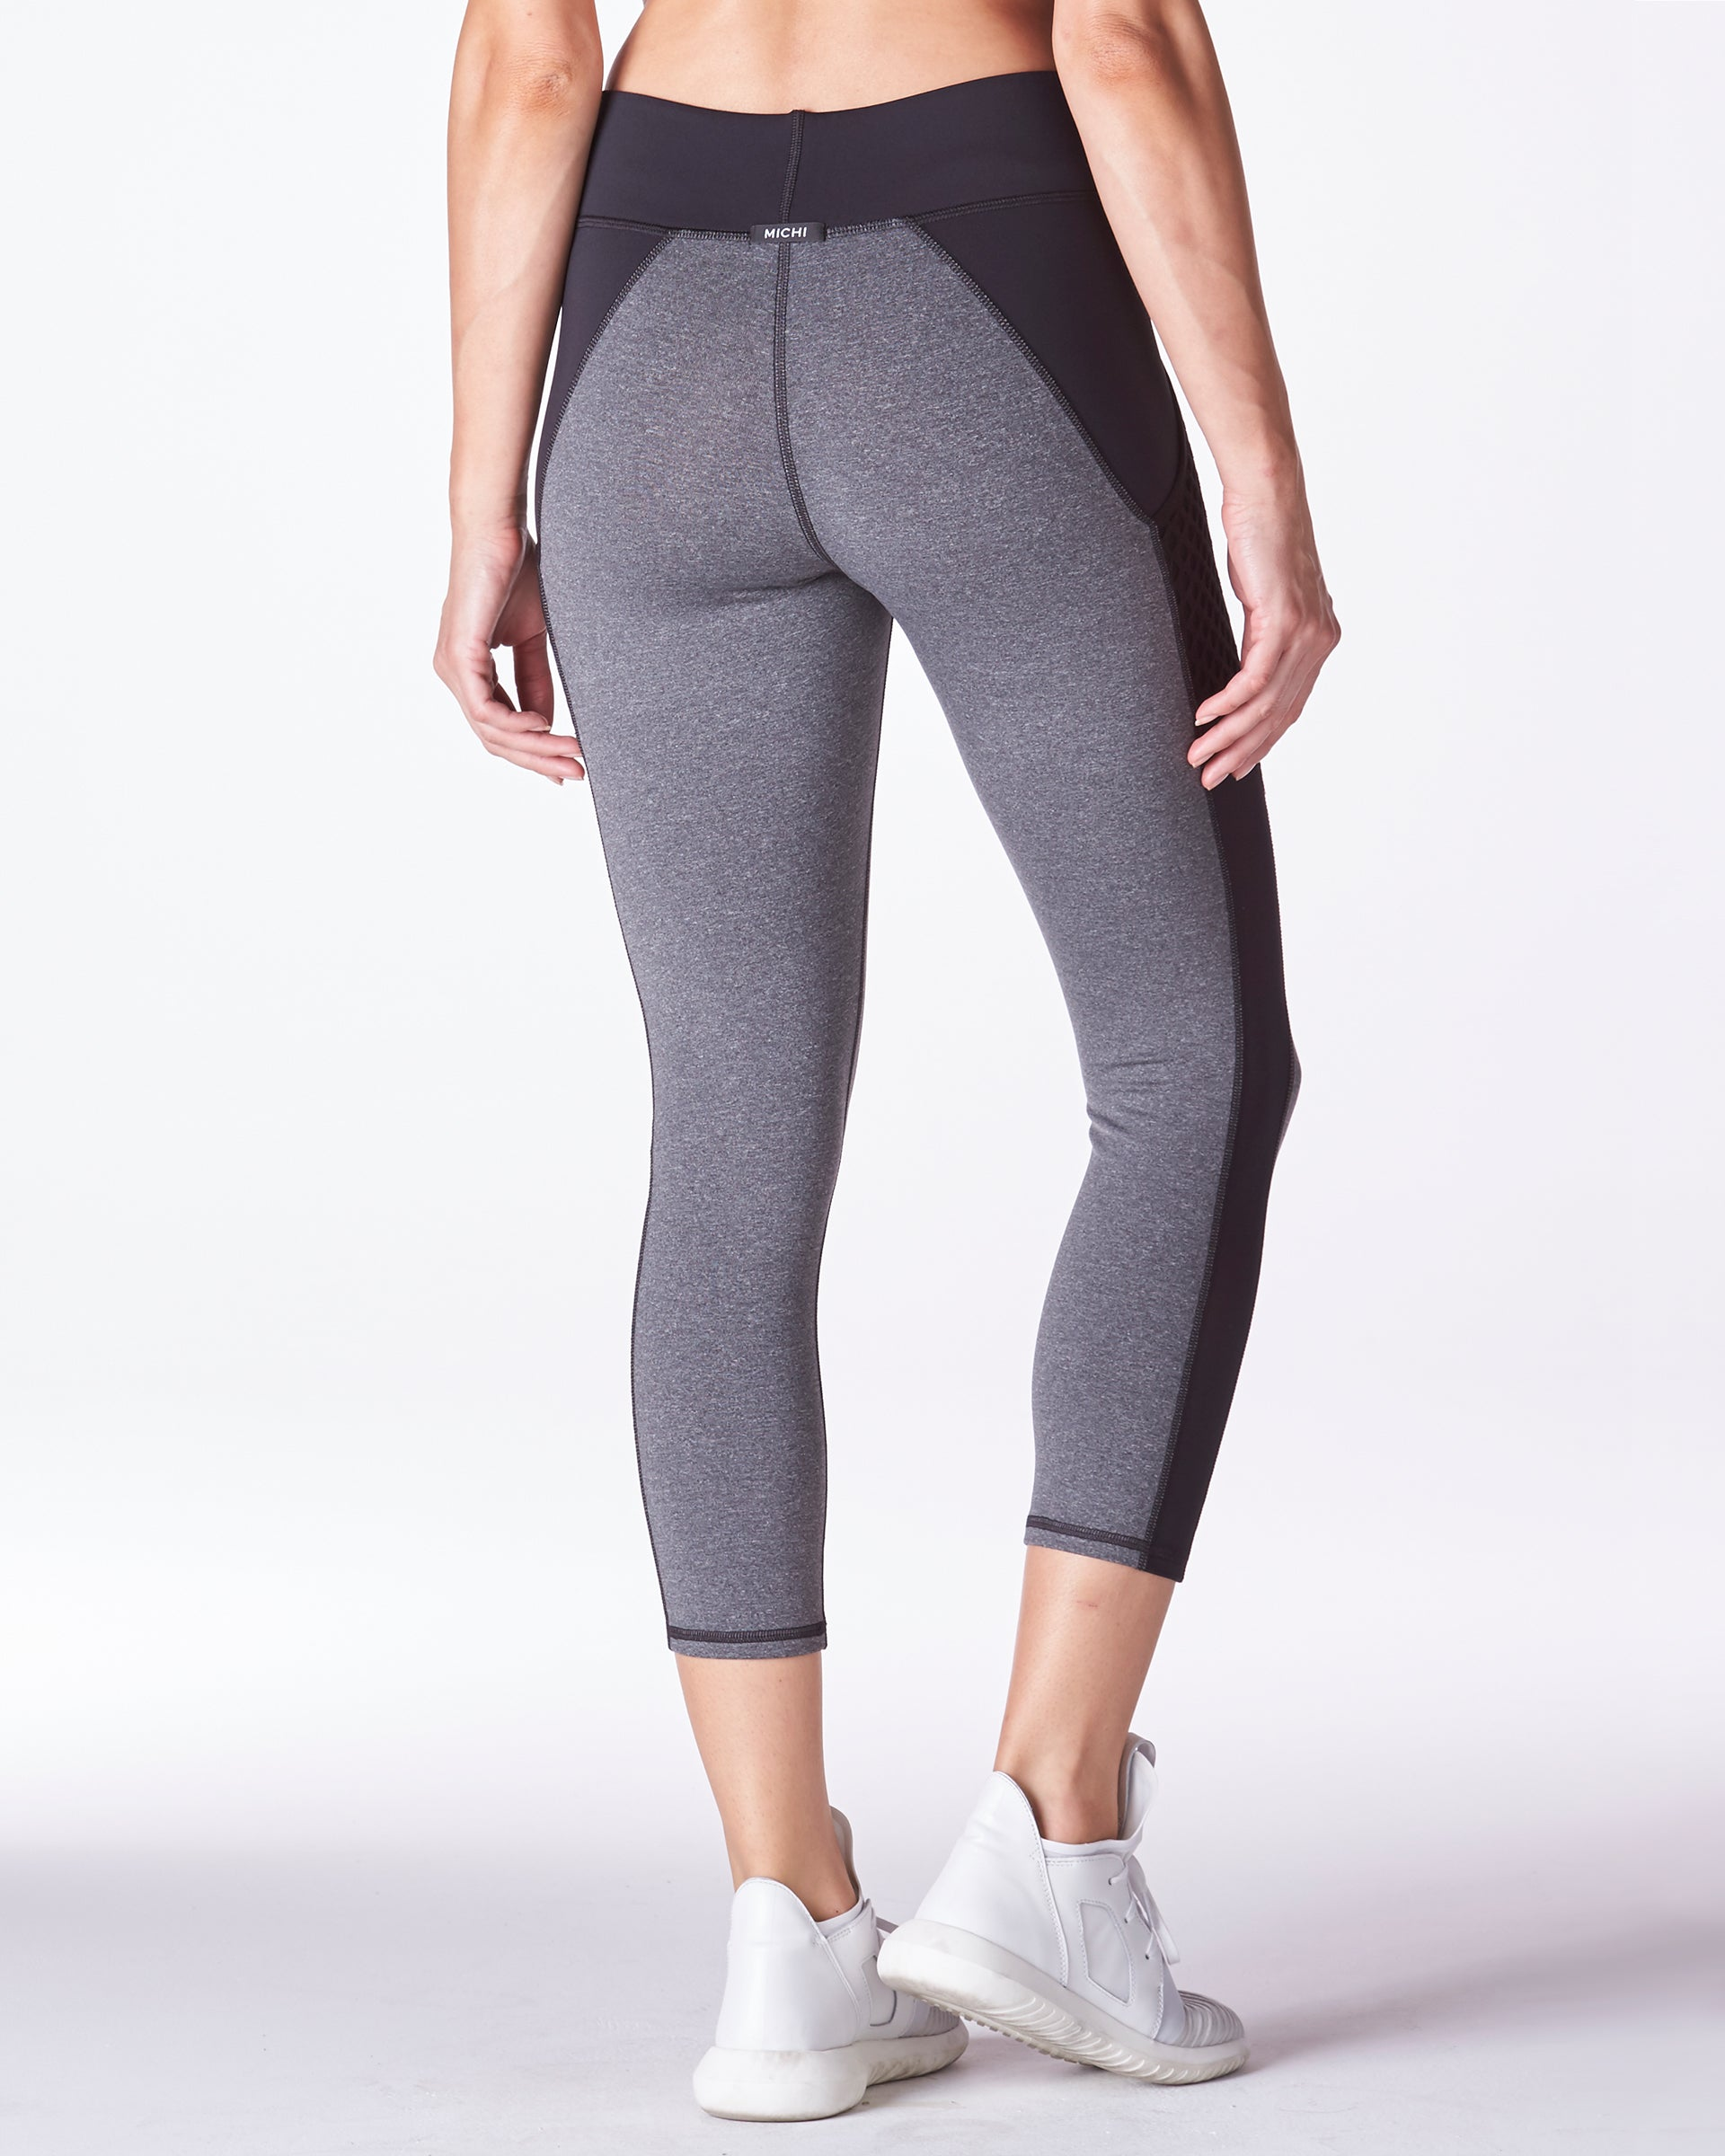 stardust-crop-legging-w-pocket-heather-grey